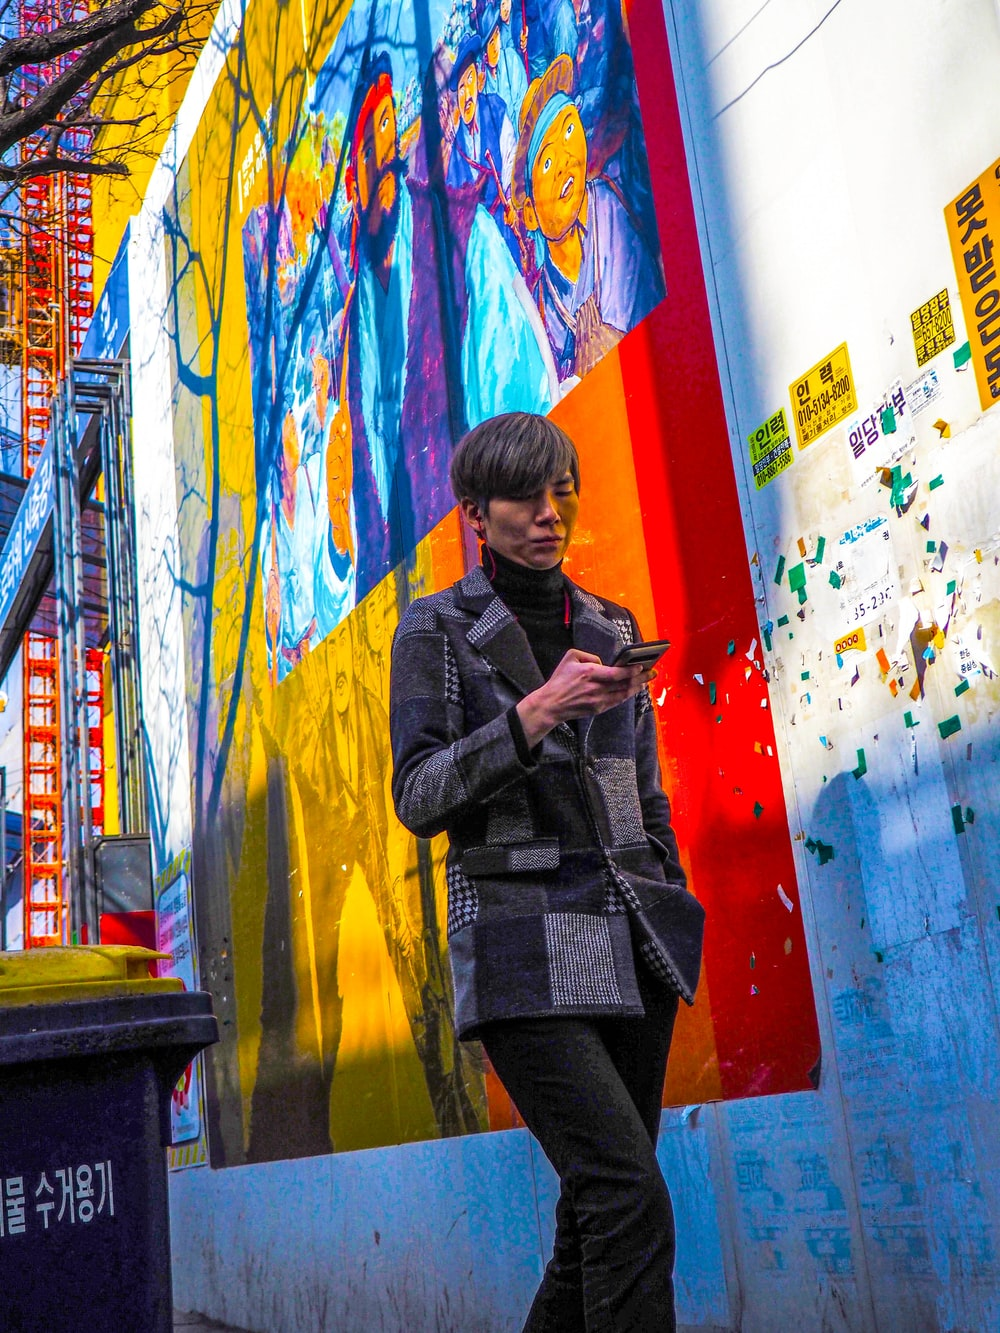 person in gray coat holding smartphone while walking near graffiti wall